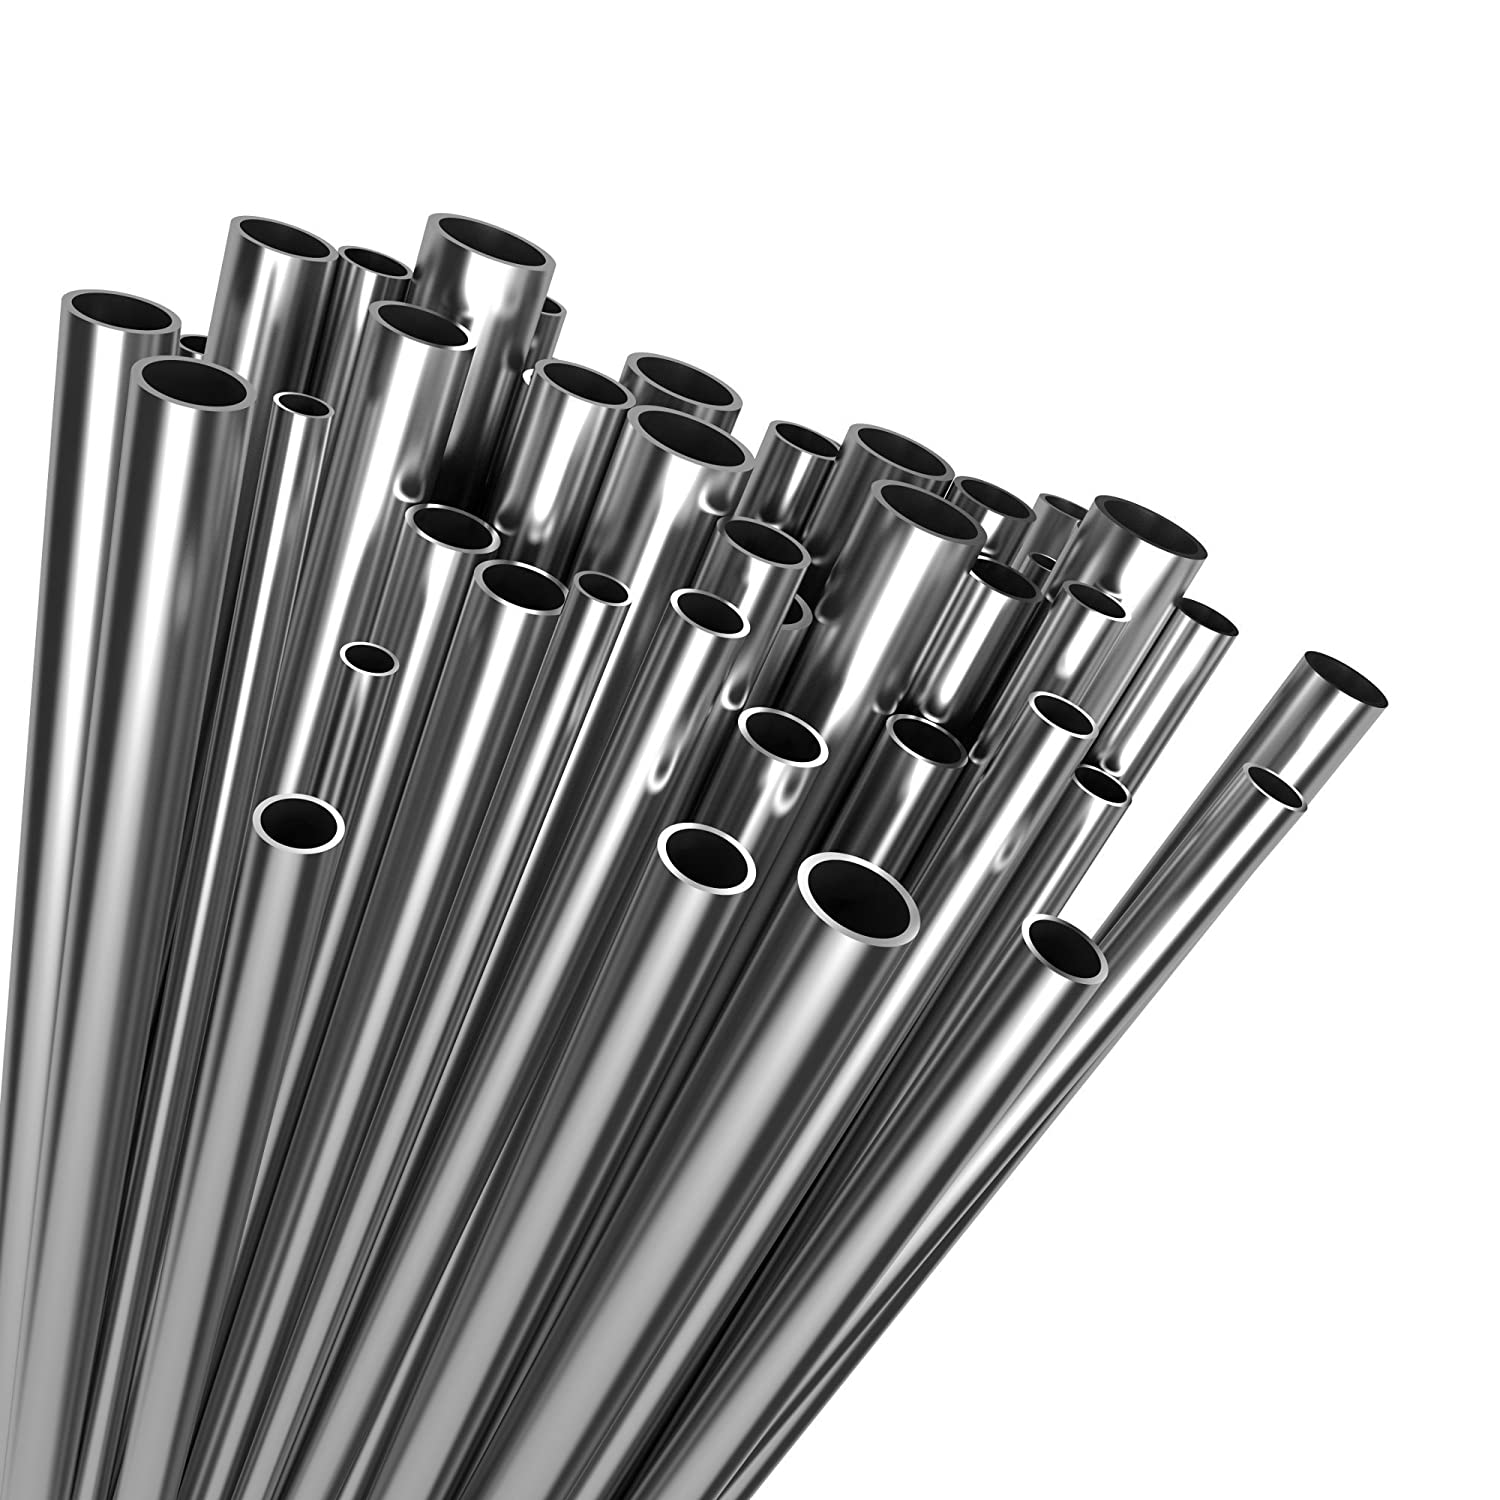 19mm x 1.2mm Stainless Steel T304 Tube 1000mm Long